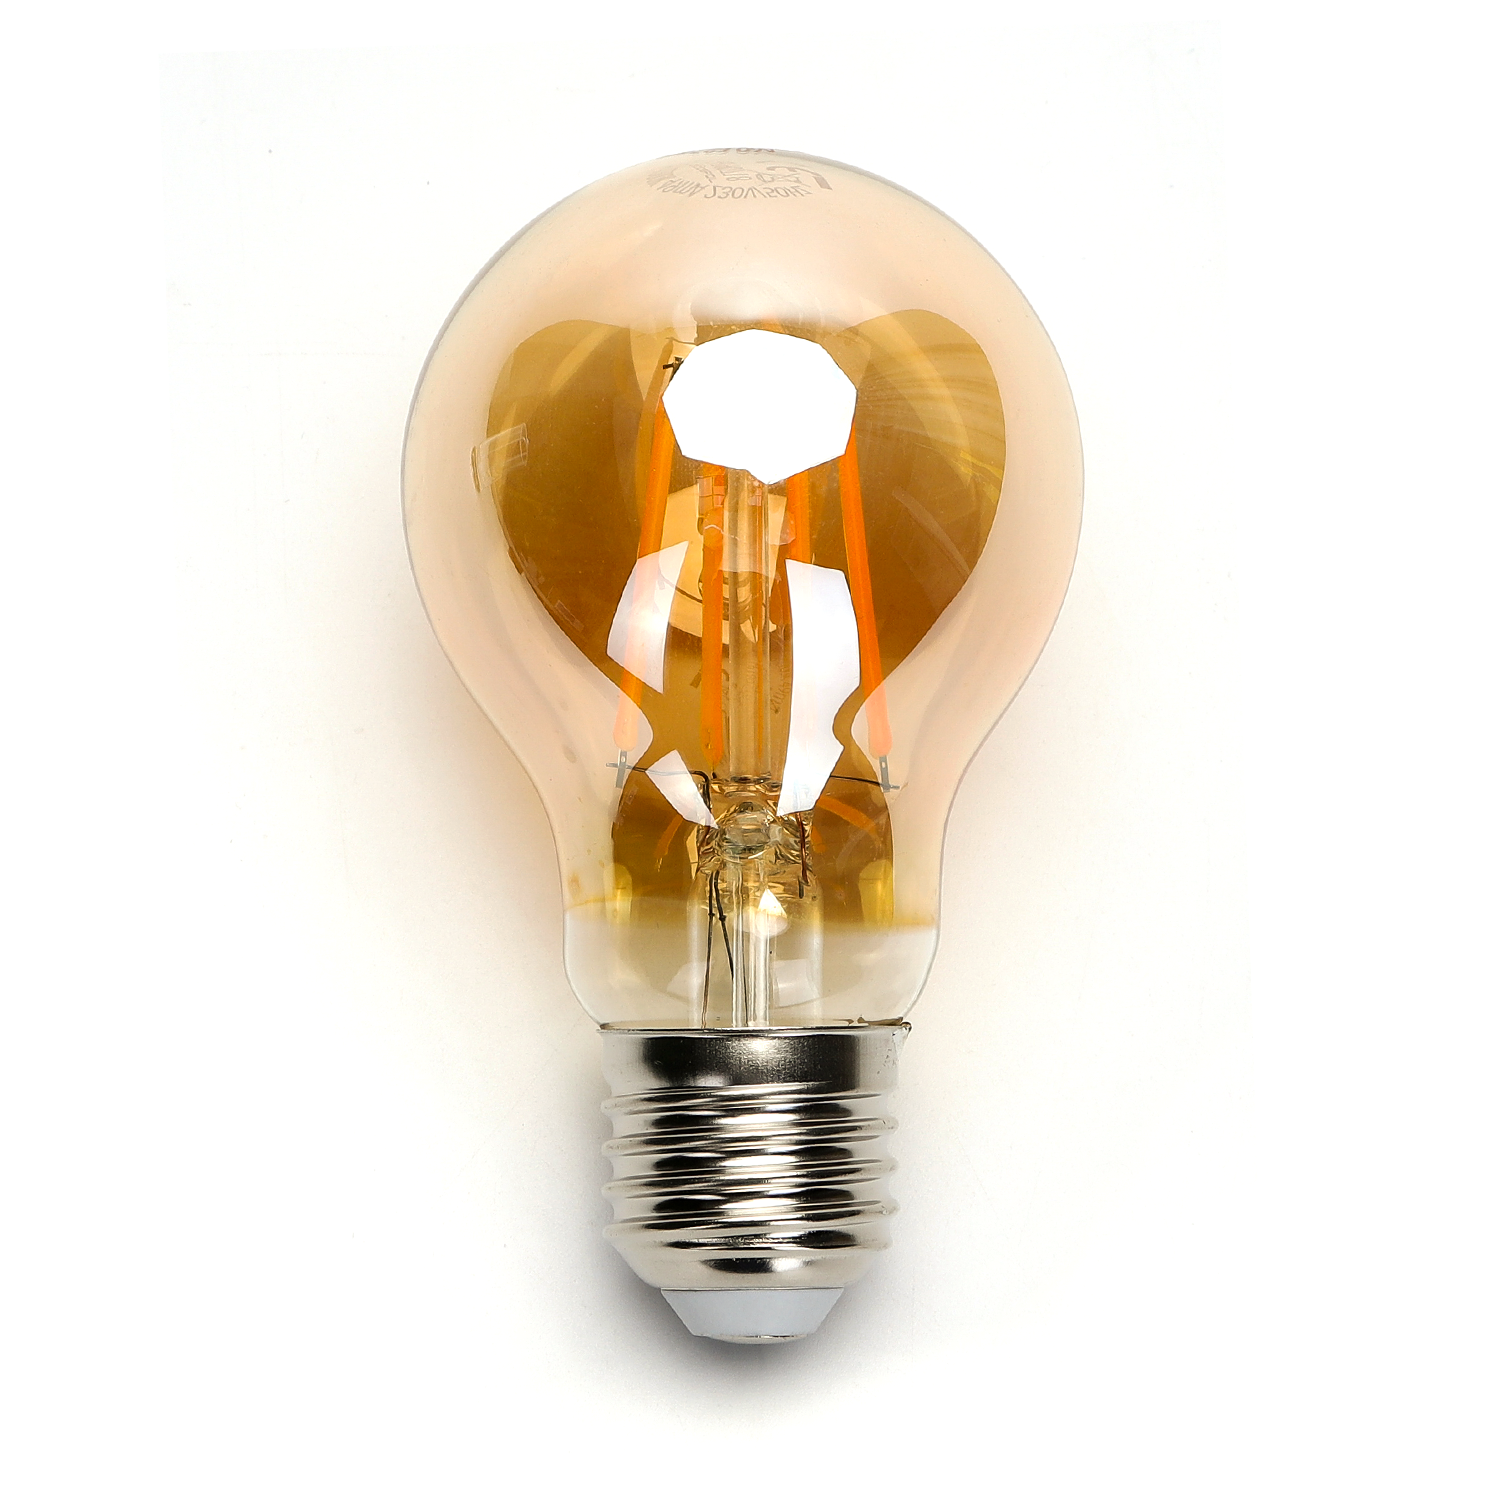 LED amber lamp filament 8 Watt grote fitting E27 2200K warm wit - lamp